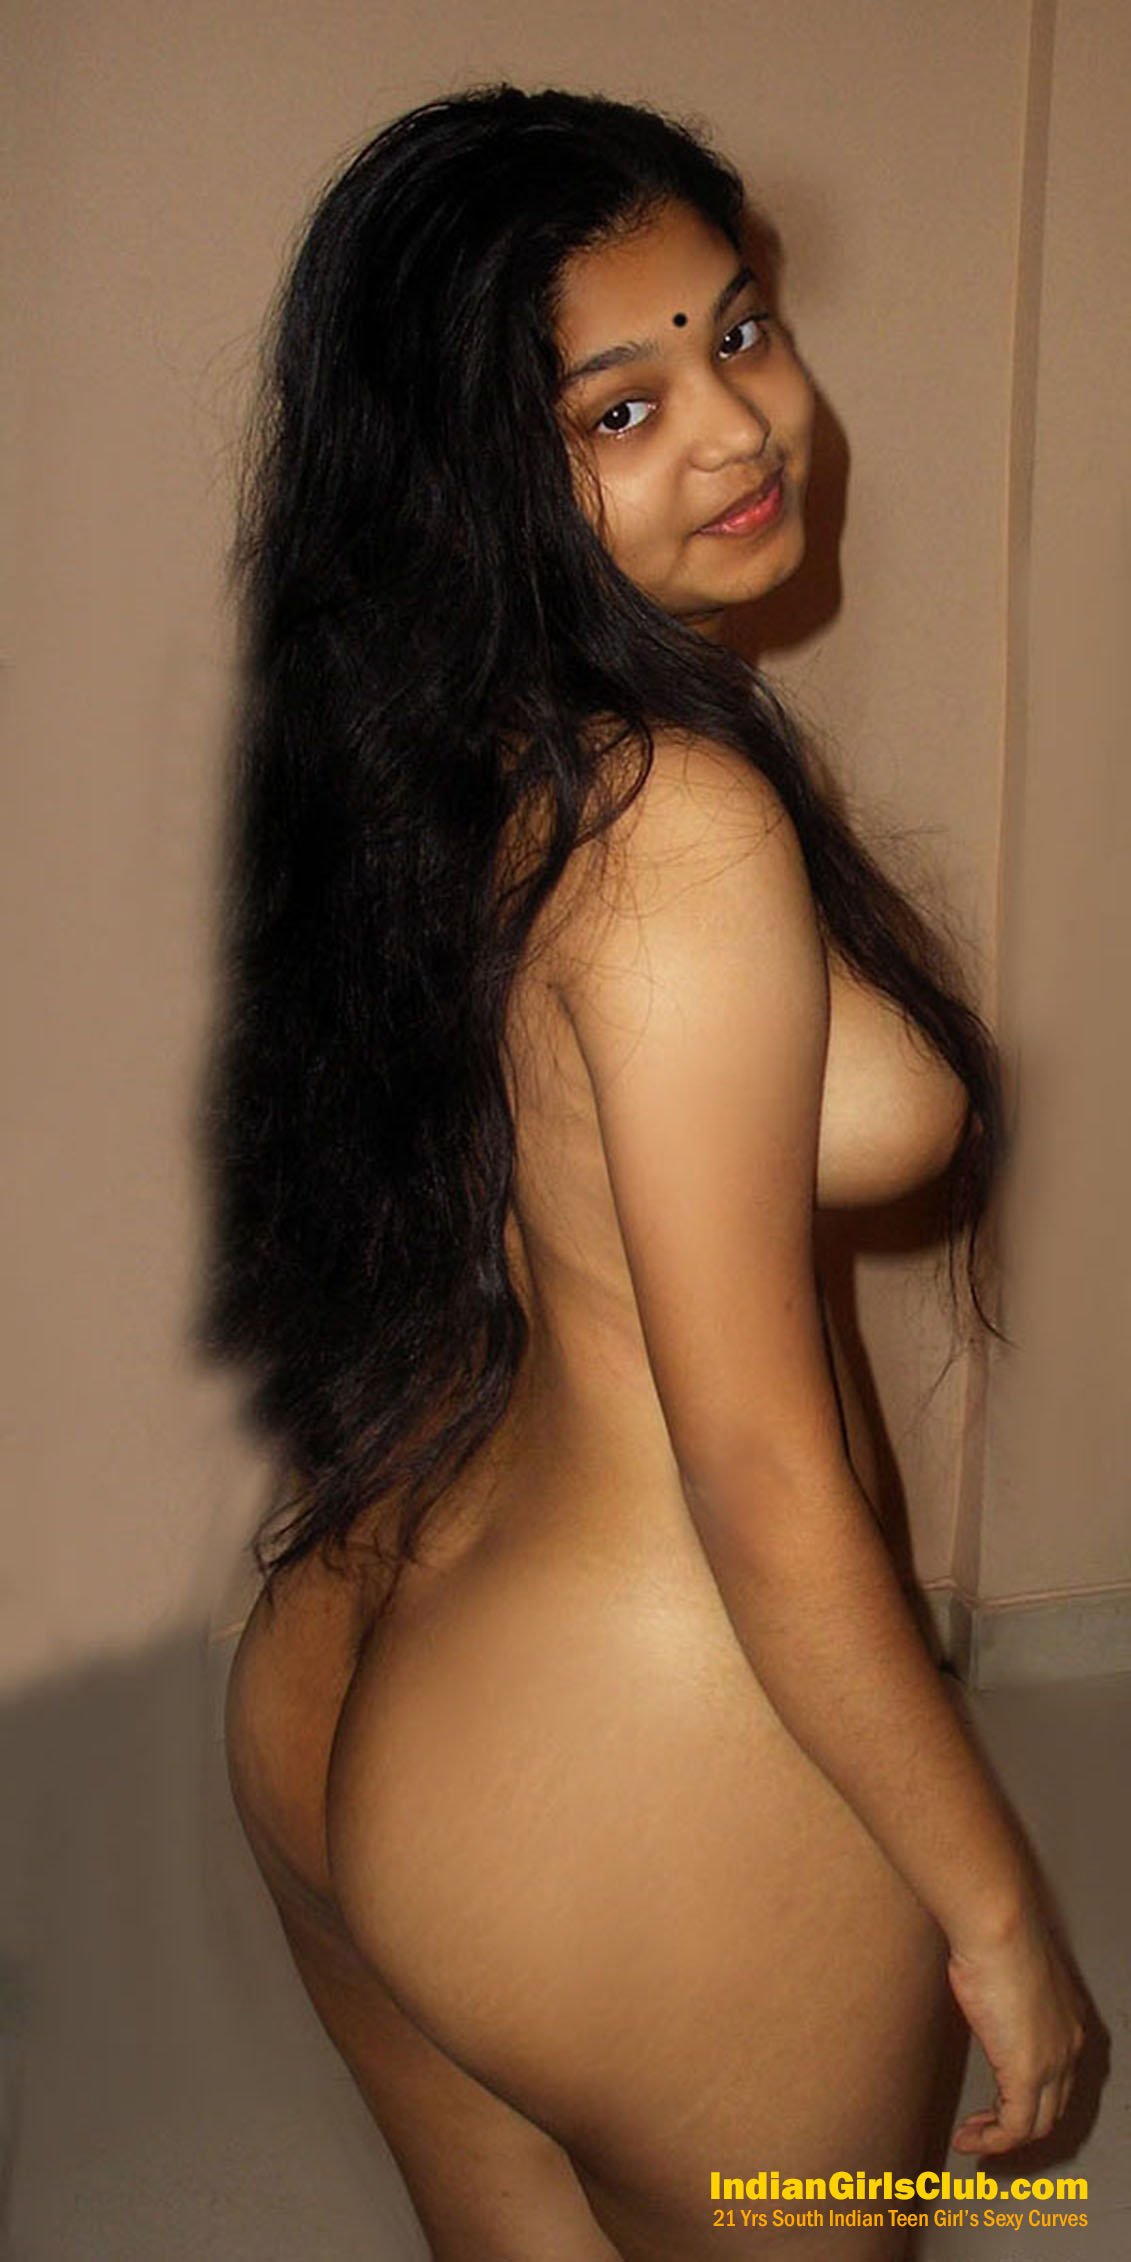 Indian women girl nude picture